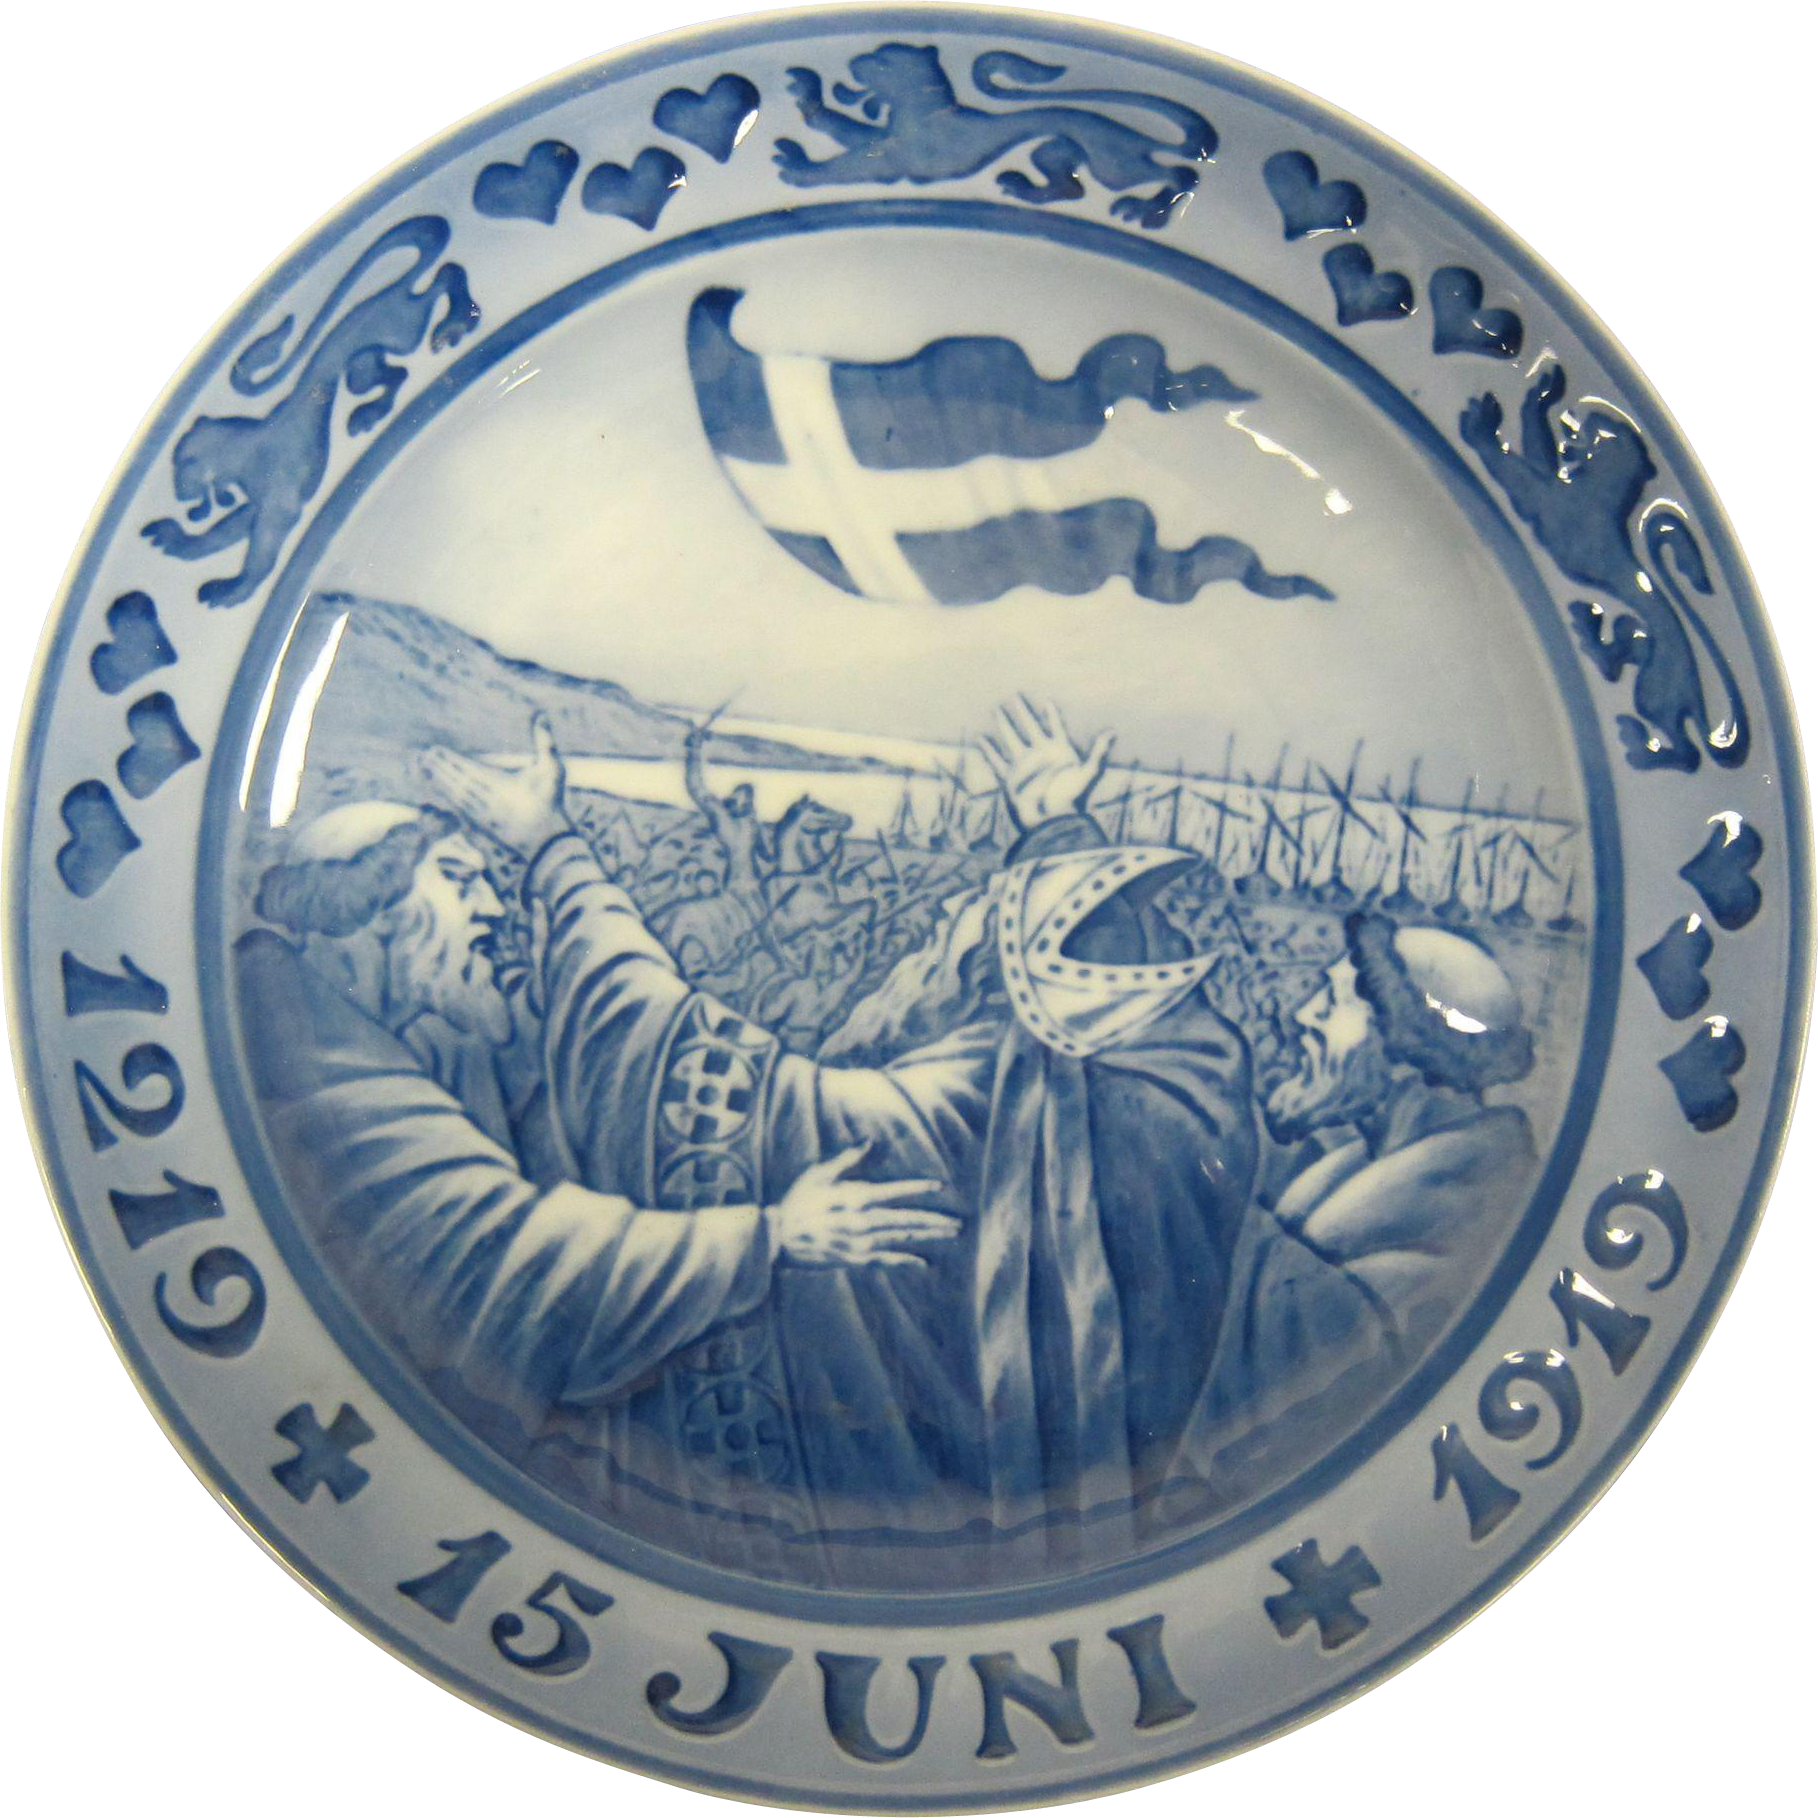 Royal Copenhagen Memorial Plate 1219 + 15 Juni + 1919